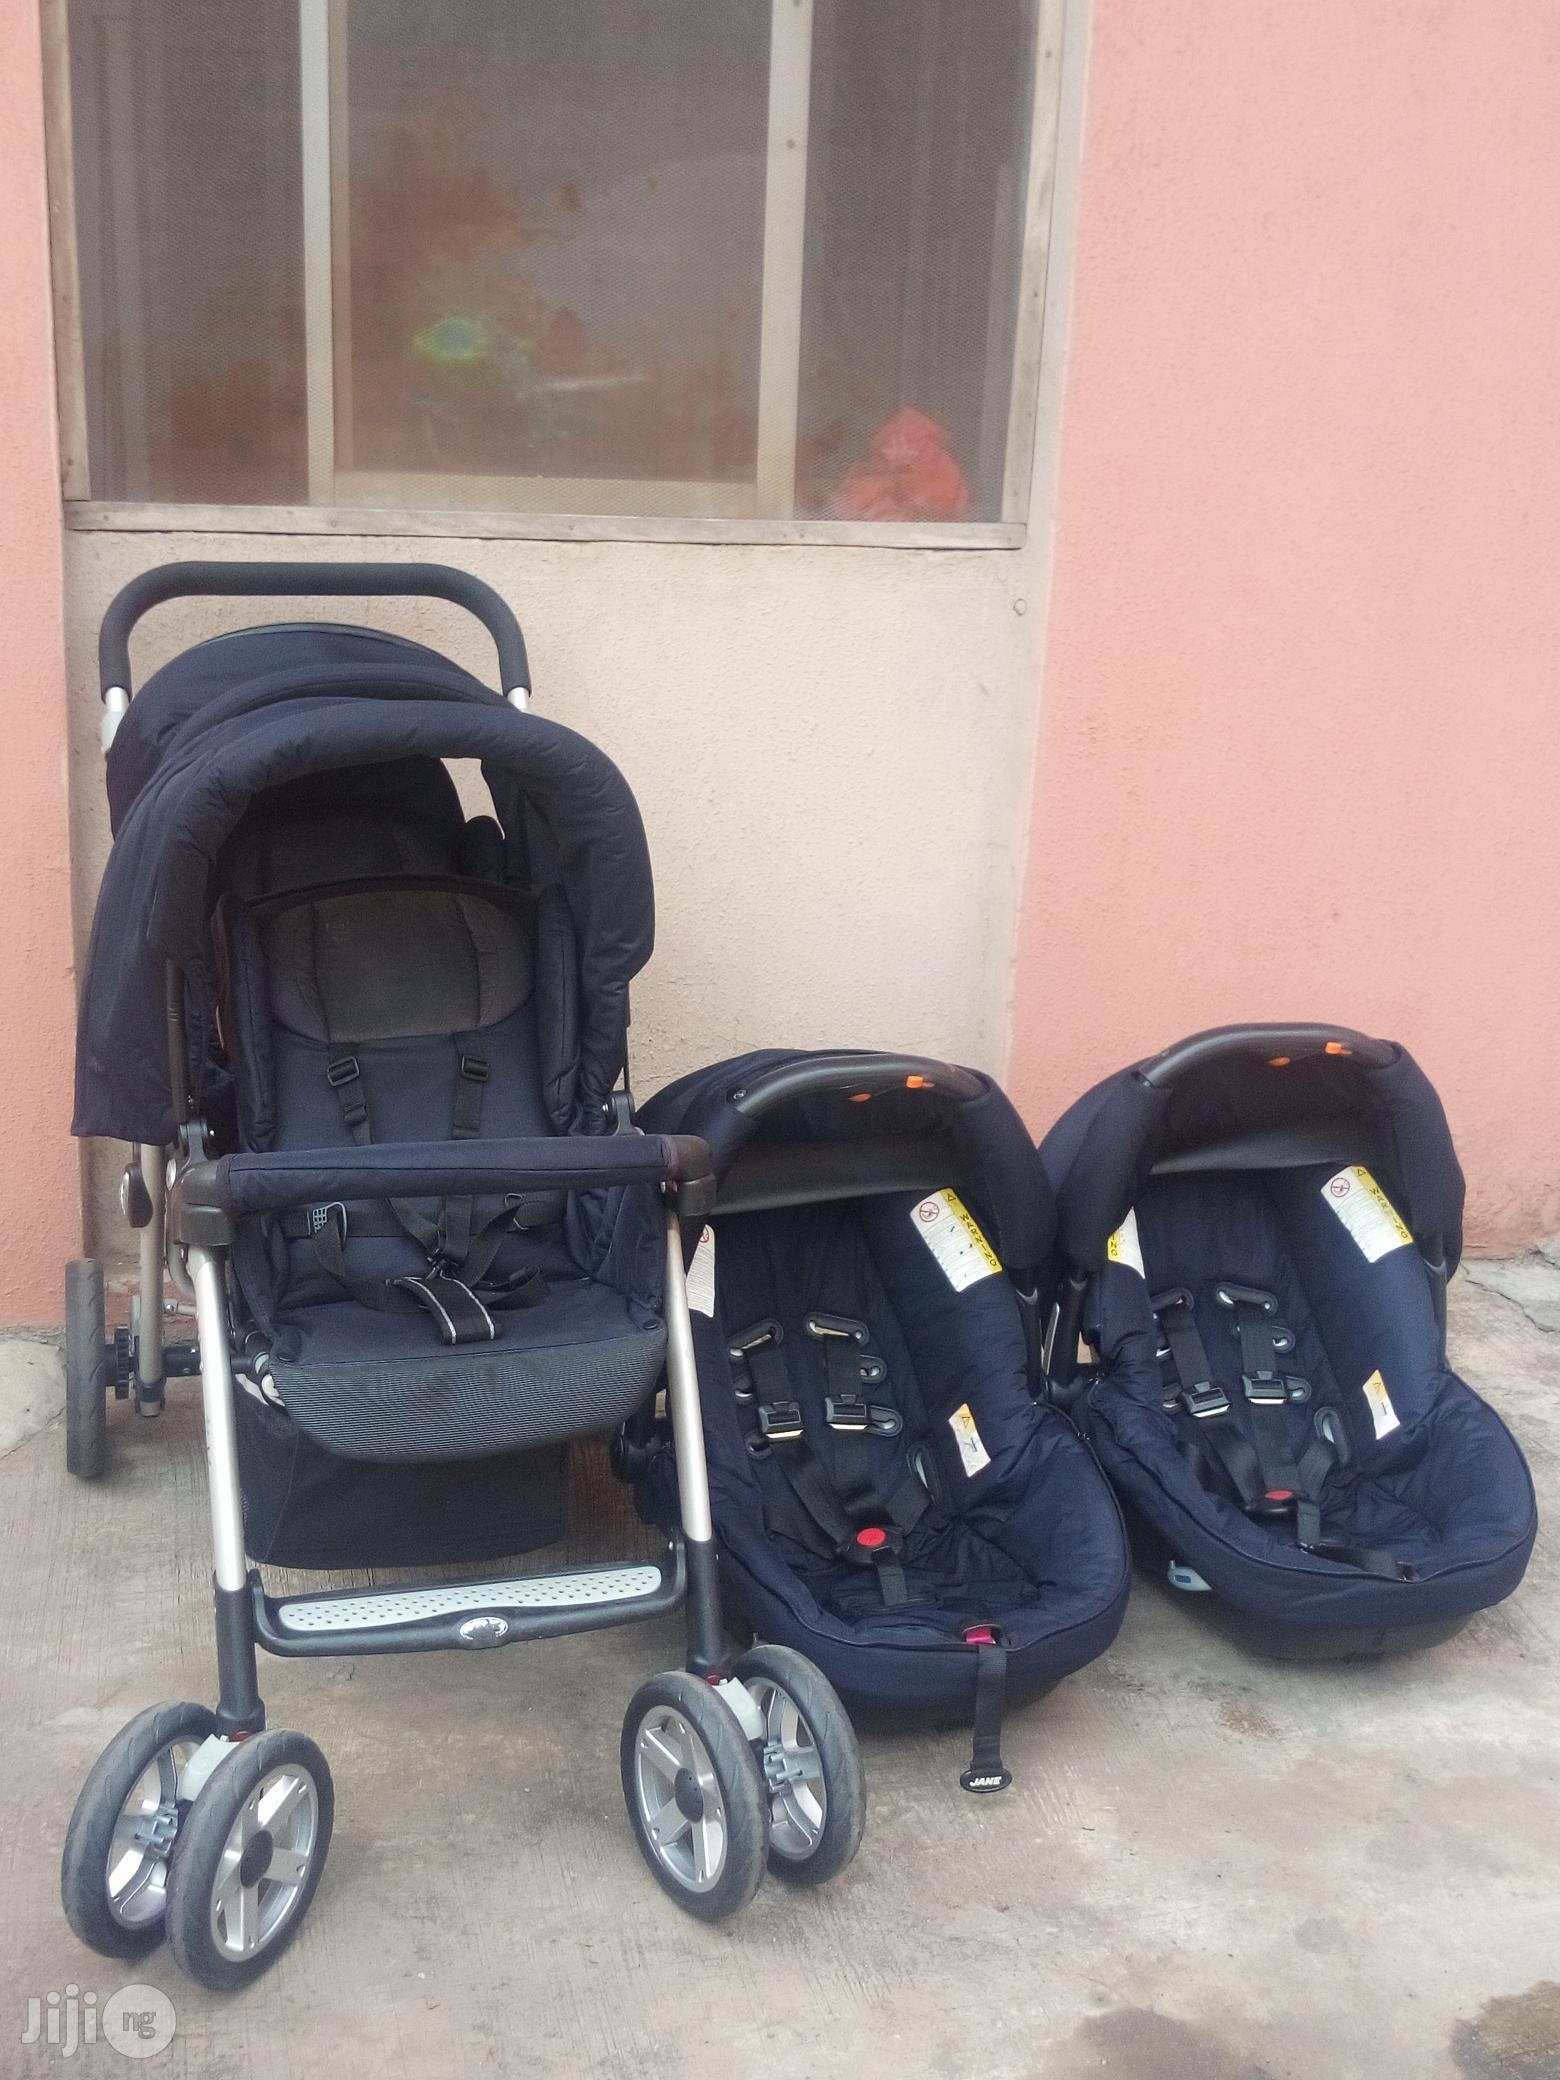 Tokunbo UK Used Jane Twin Stroller With Car Seat From Newborn To Toddler